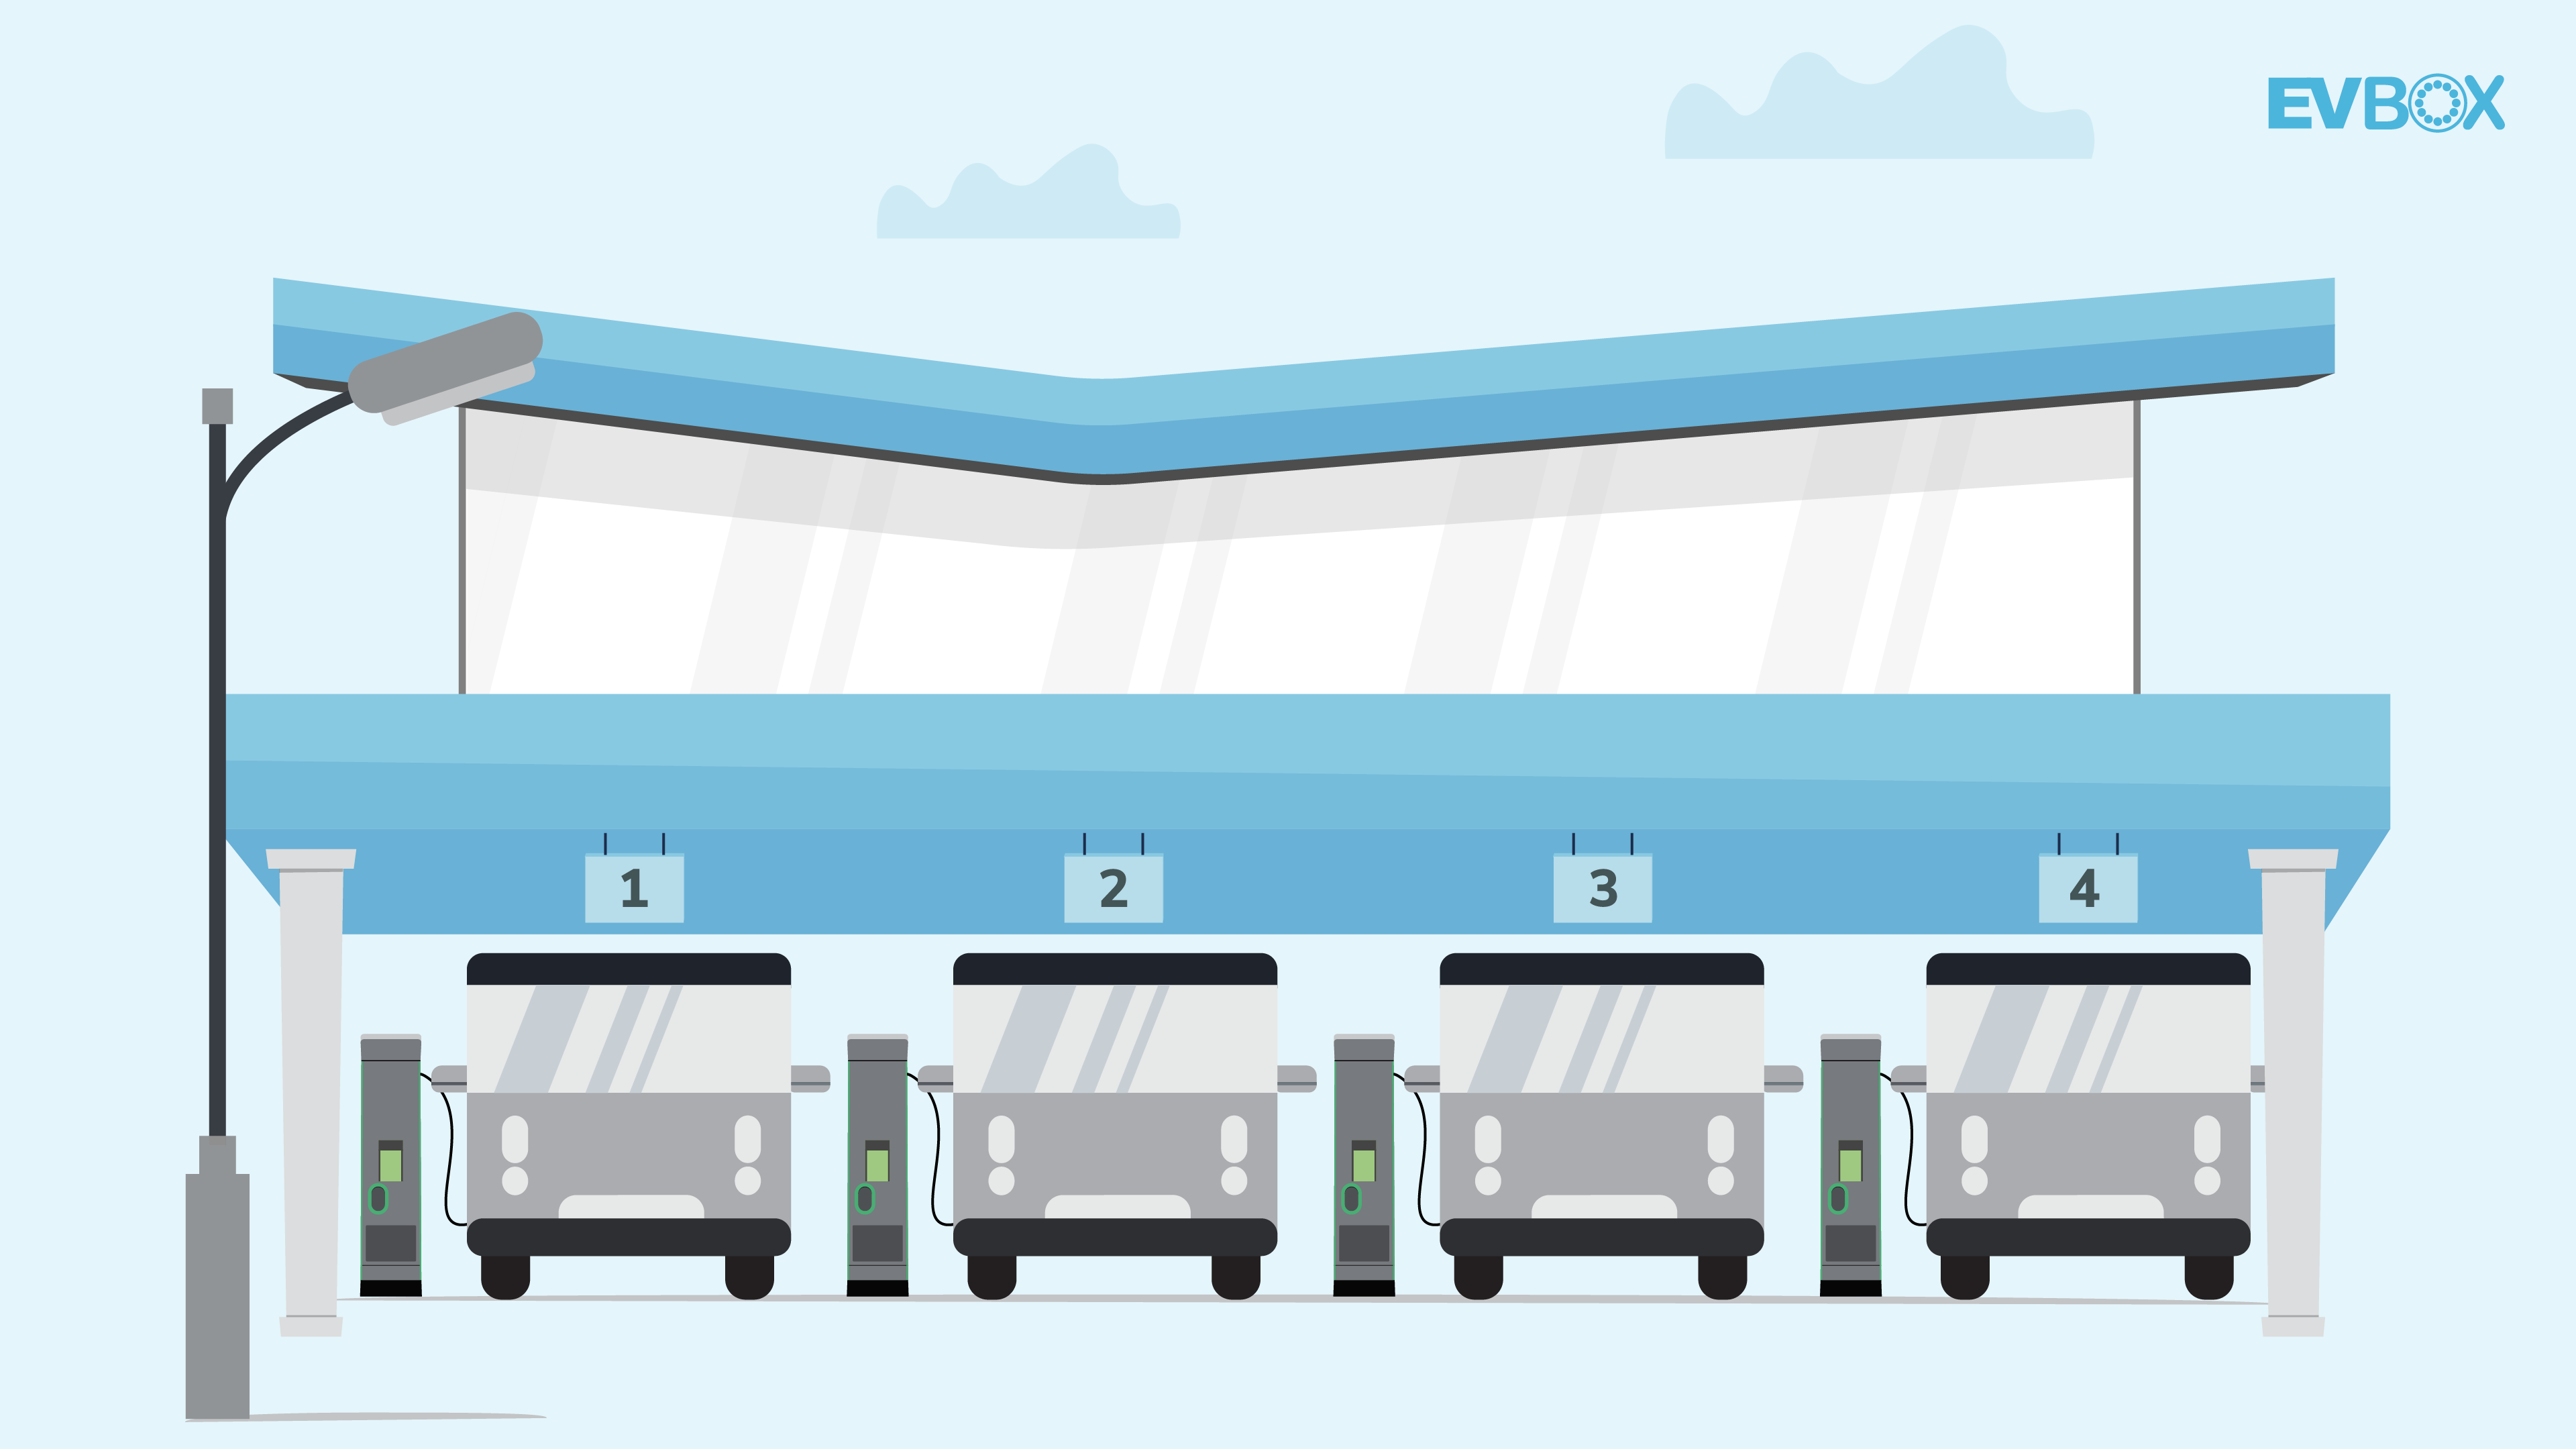 A fleet of buses charging simultaneously